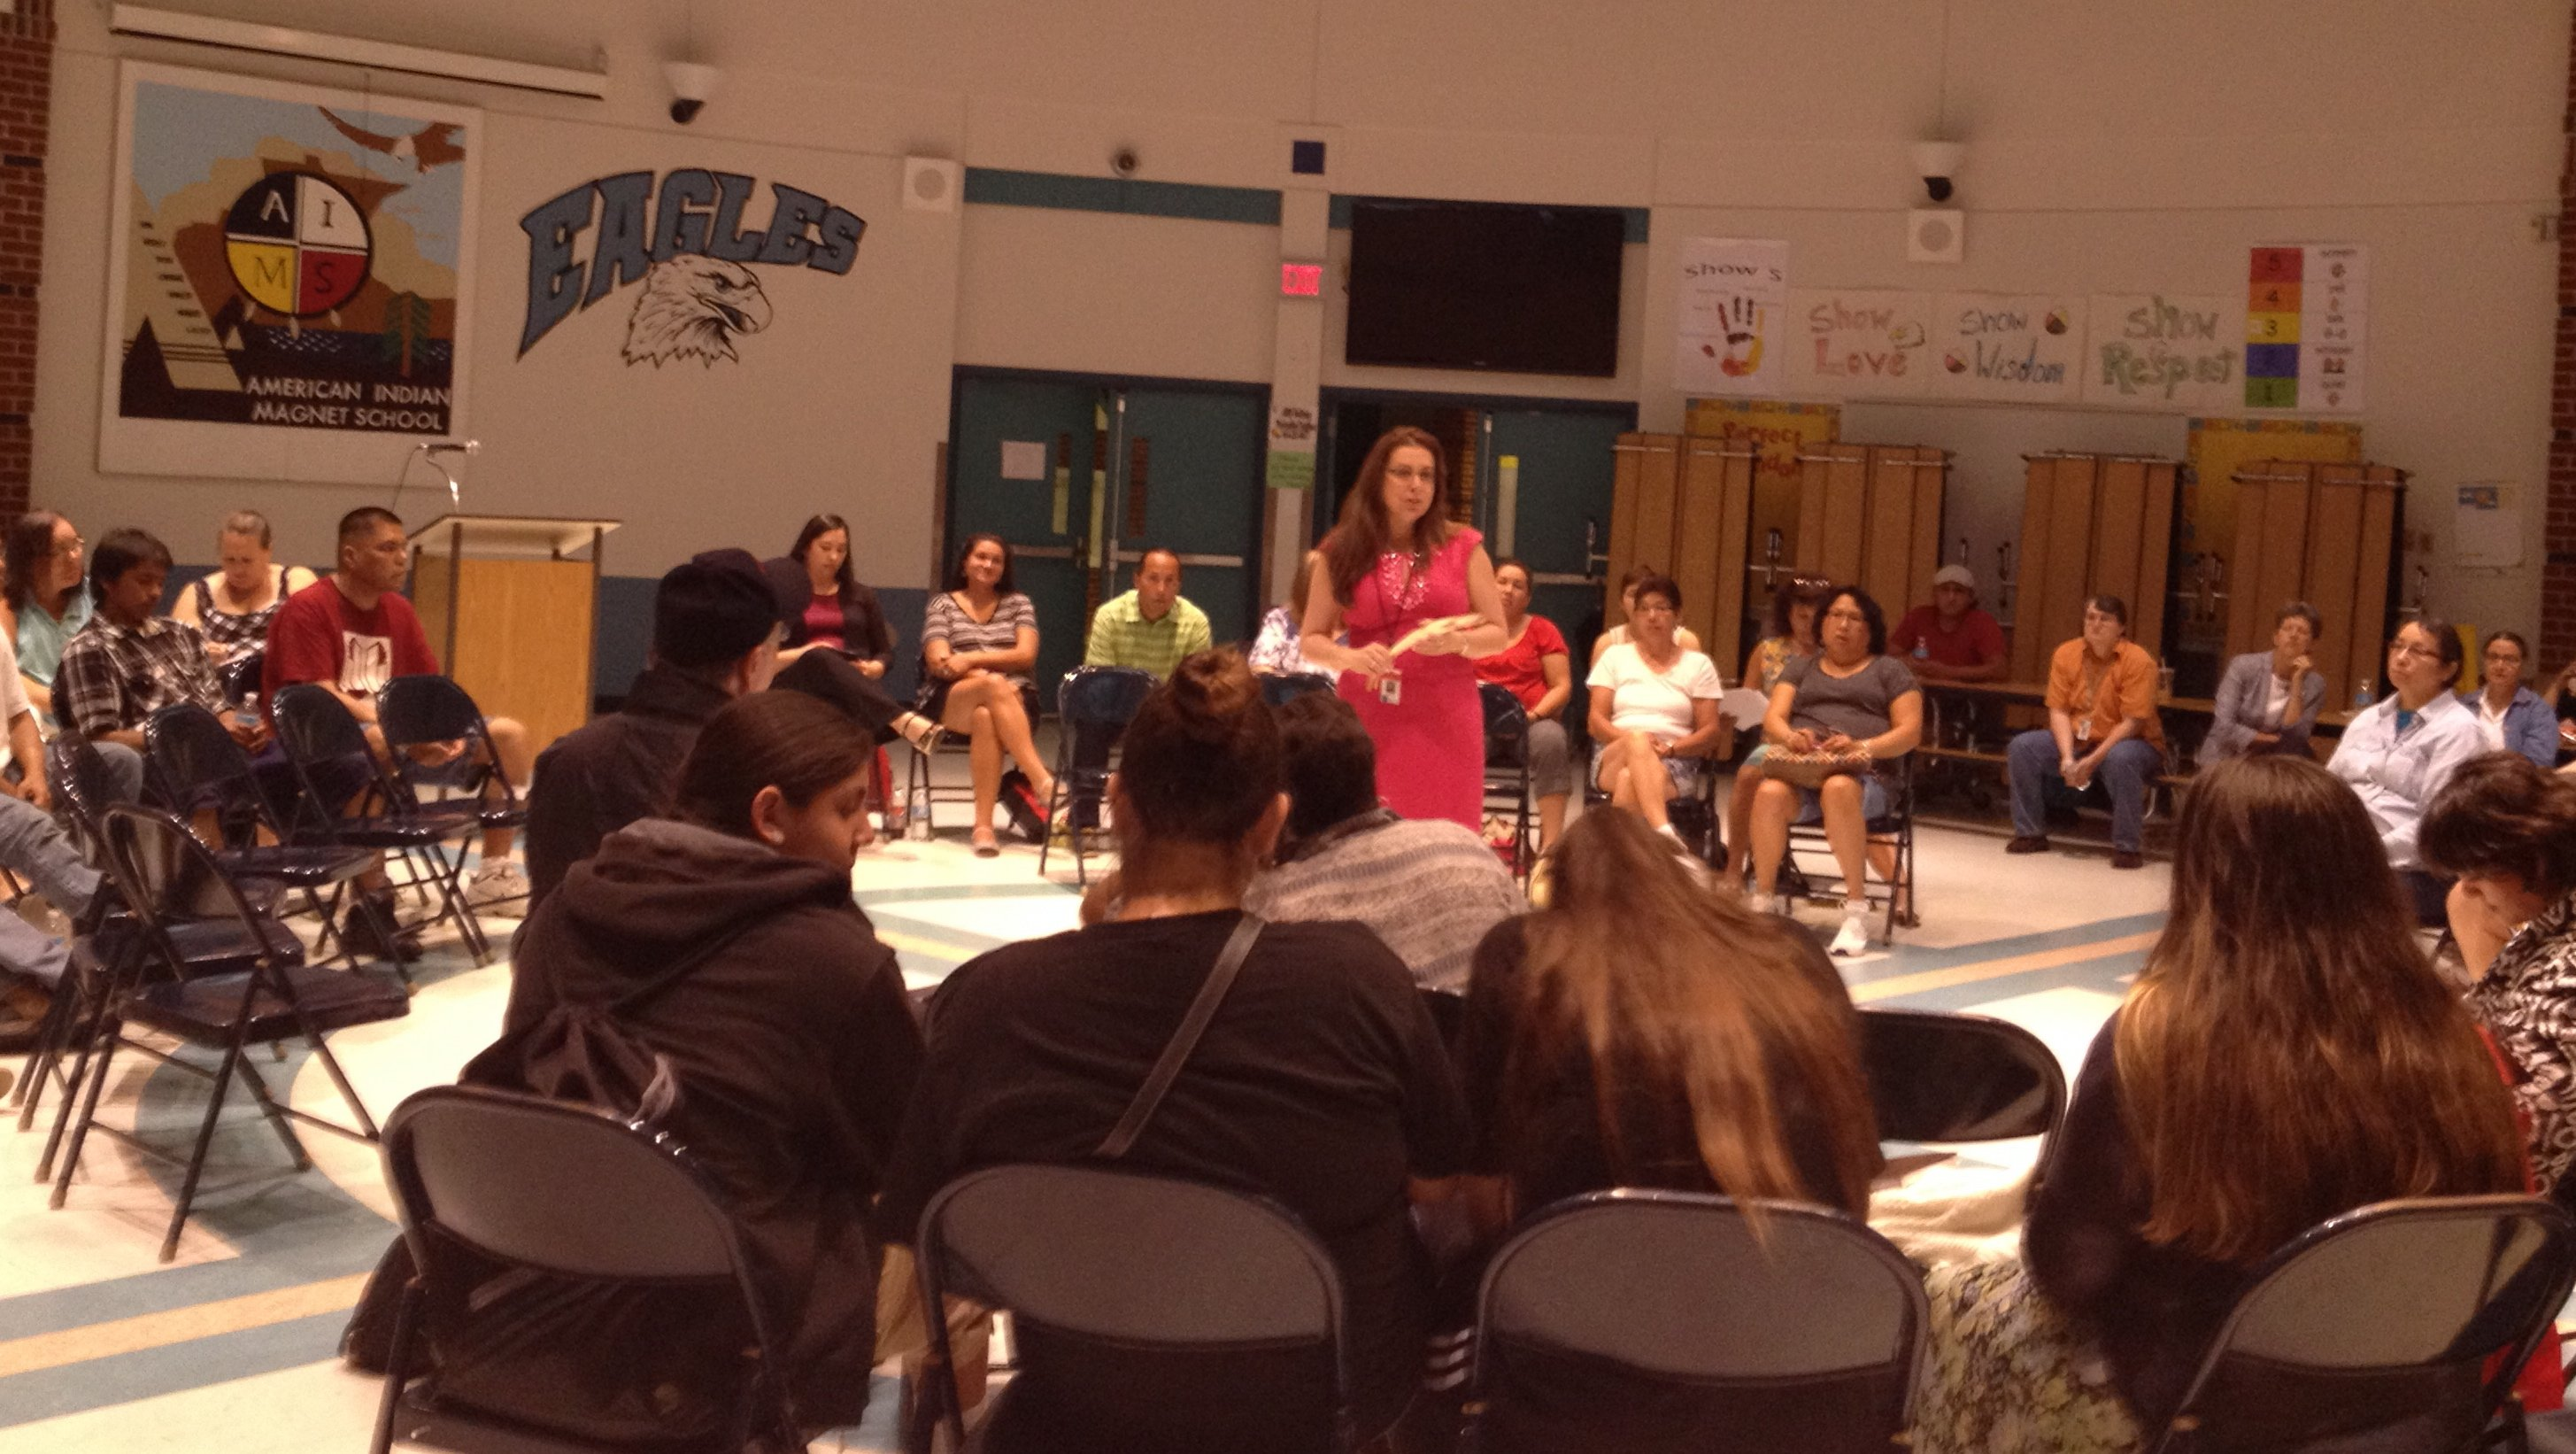 SPPS superintendent Valeria Silva speaks to June 16 community meeting. (Photo by Sheila Regan)